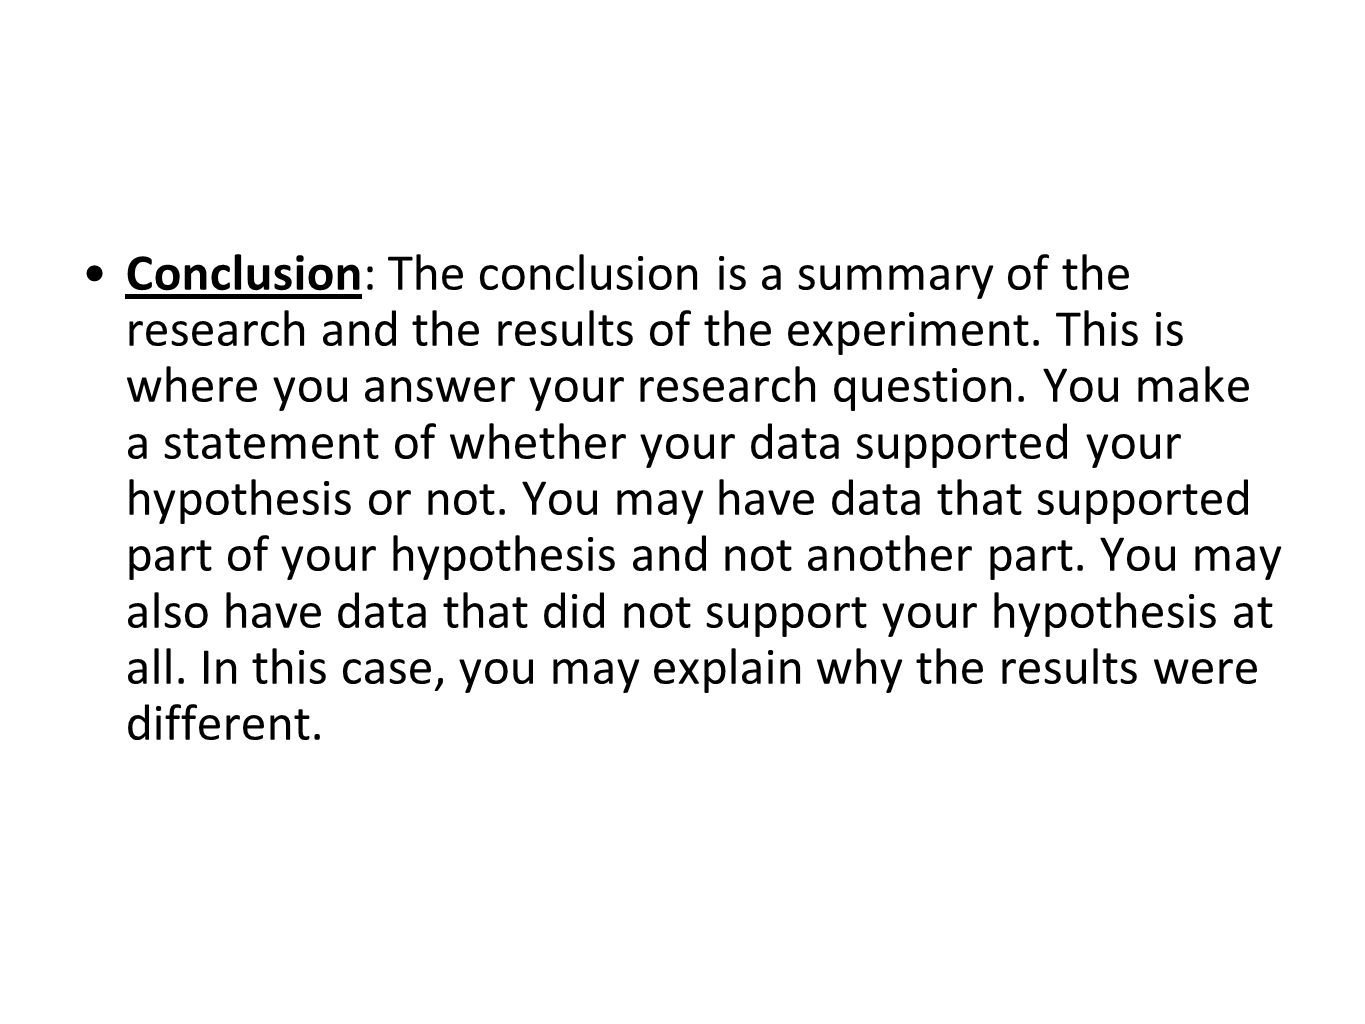 Conclusion: The conclusion is a summary of the research and the results of the experiment.